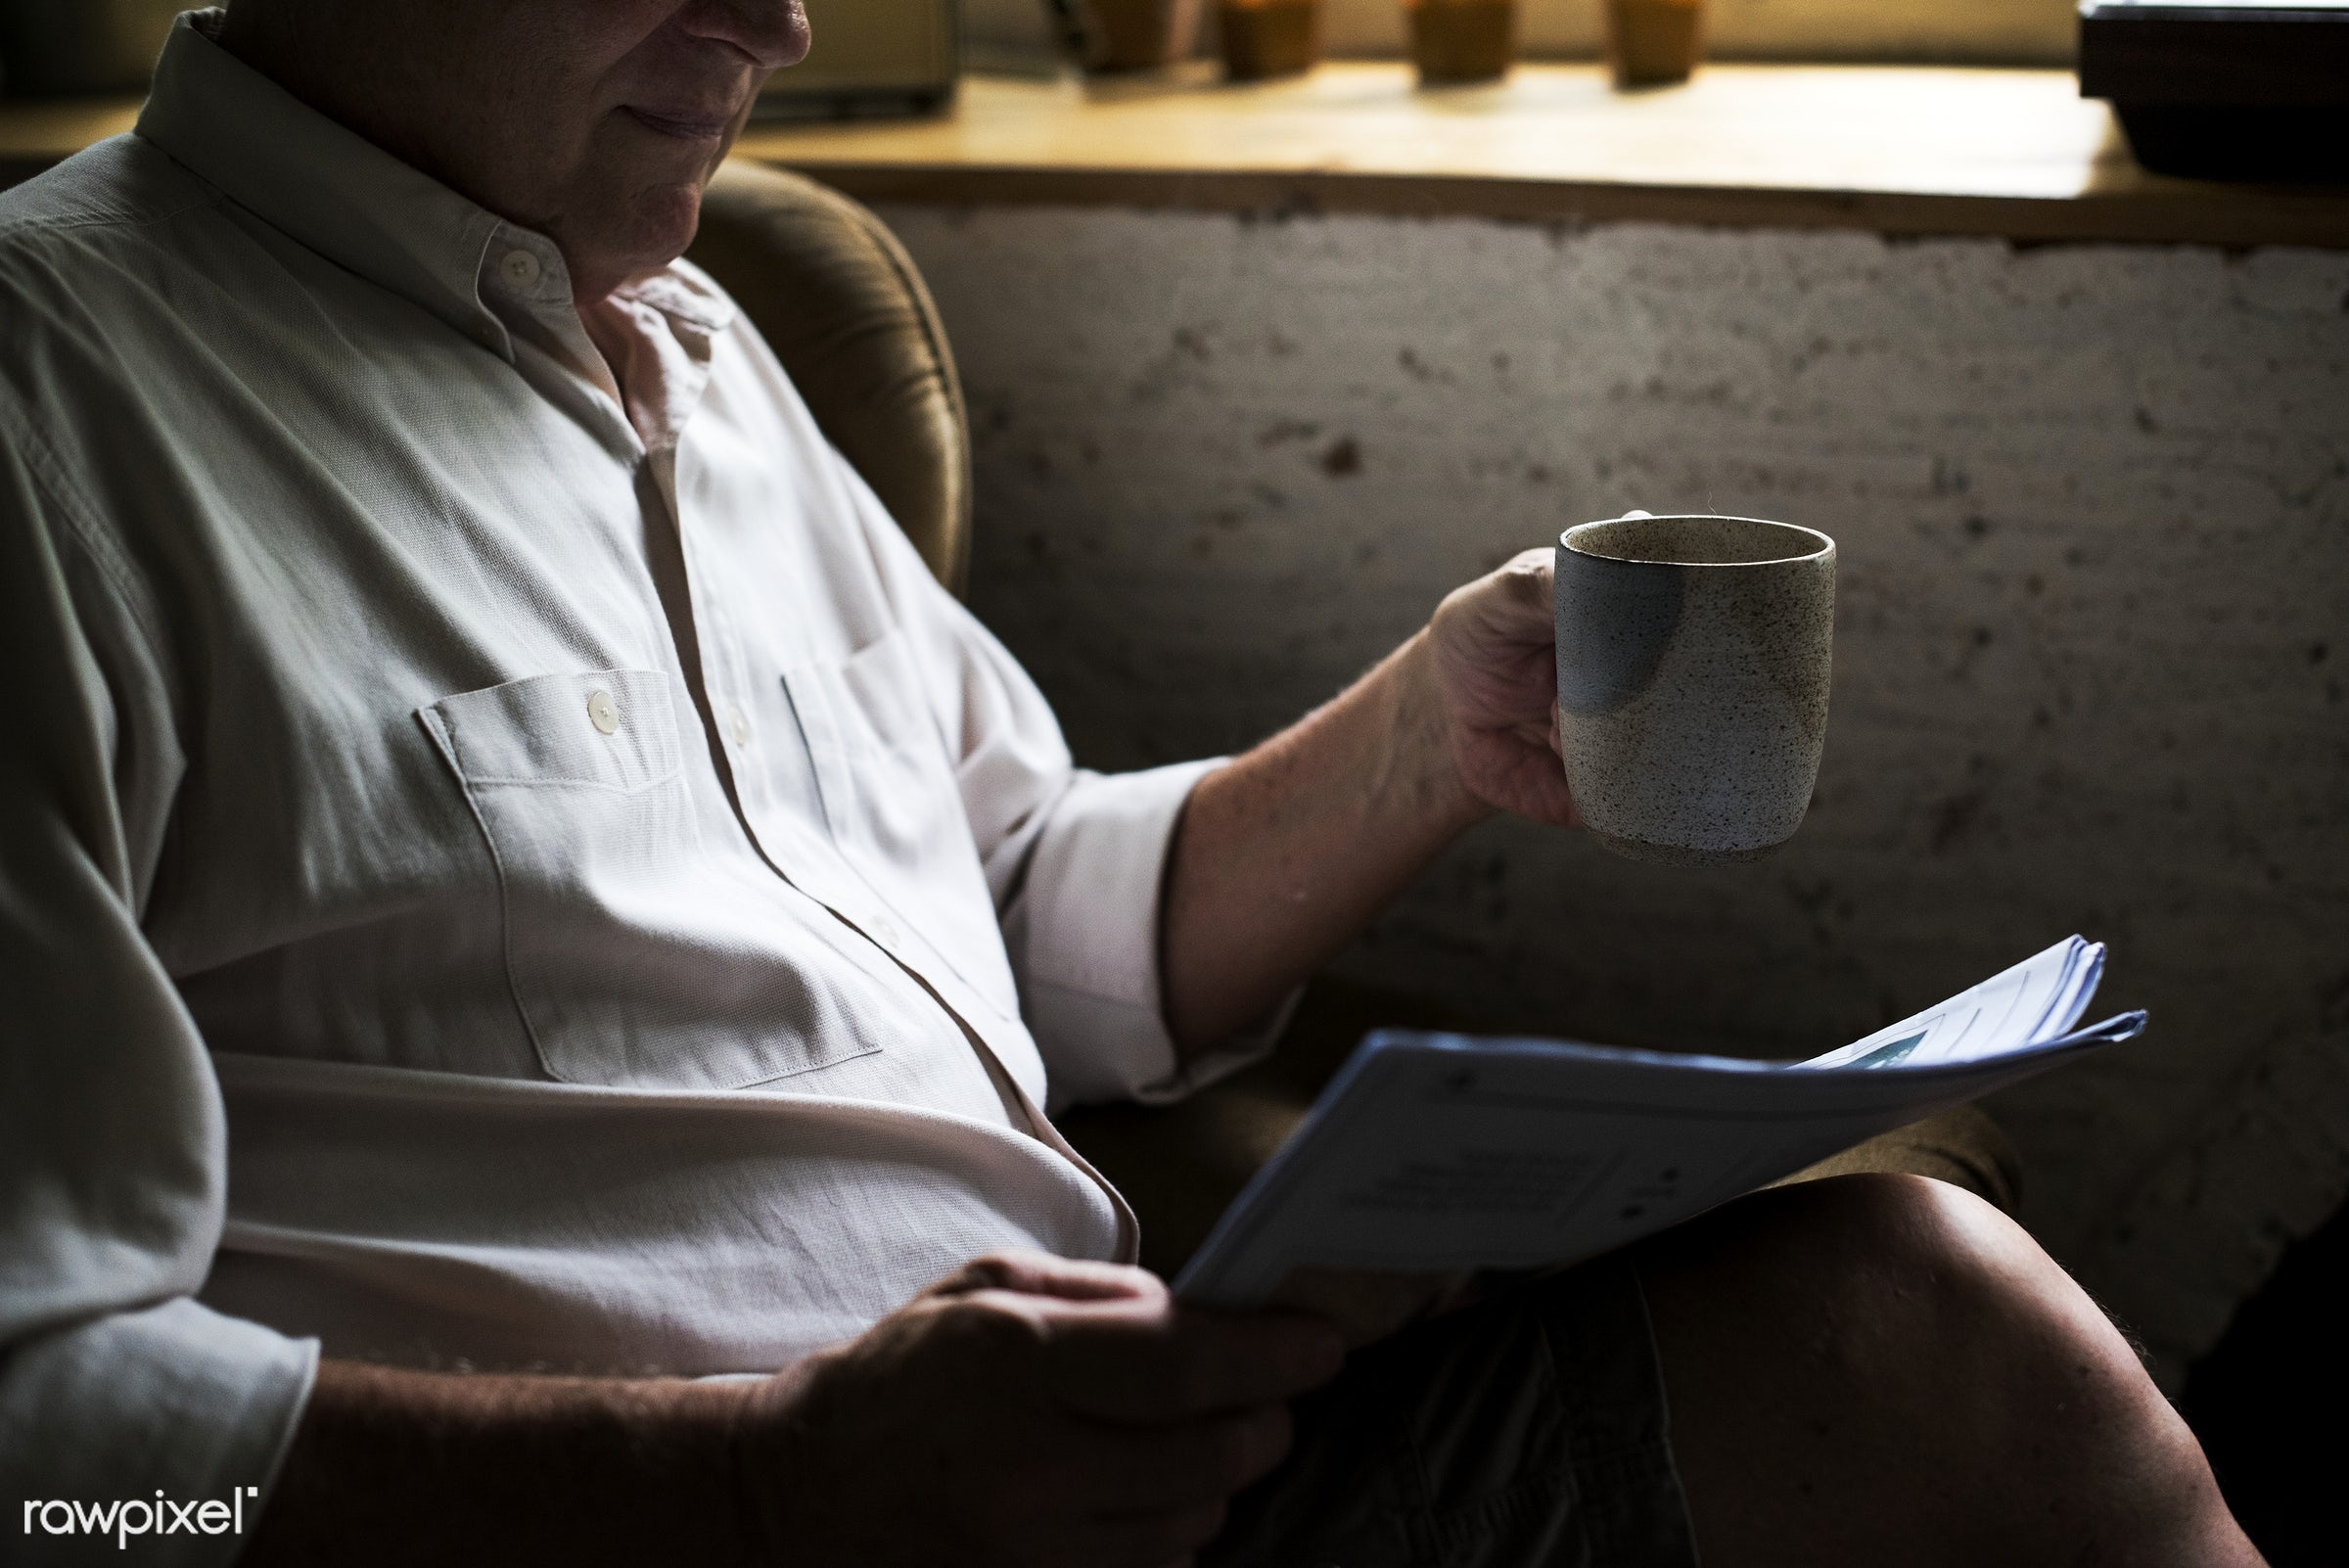 cup, relax, holding, indoors, house, hands, side, living room, read, alone, closeup, man, hobby, leisure, sitting, elderly,...